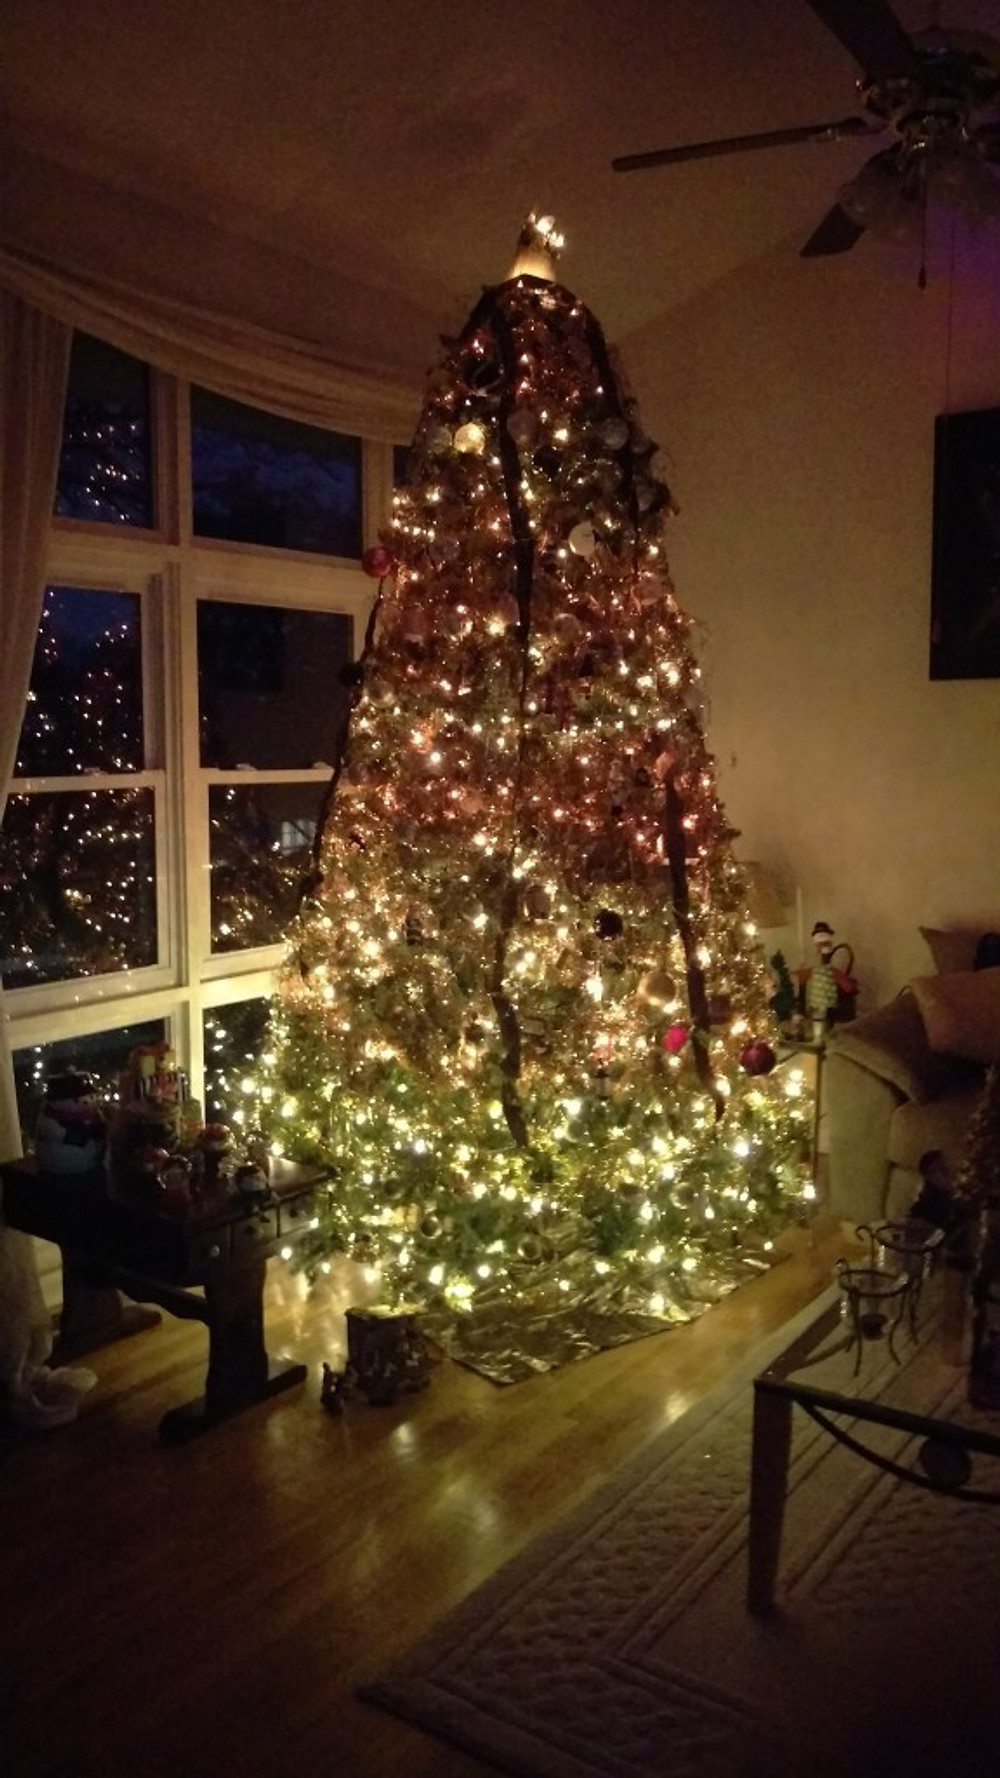 A picture of my Christmas tree lit up. The tree is decorated in gold and white lights and stands about 10 feet tall.